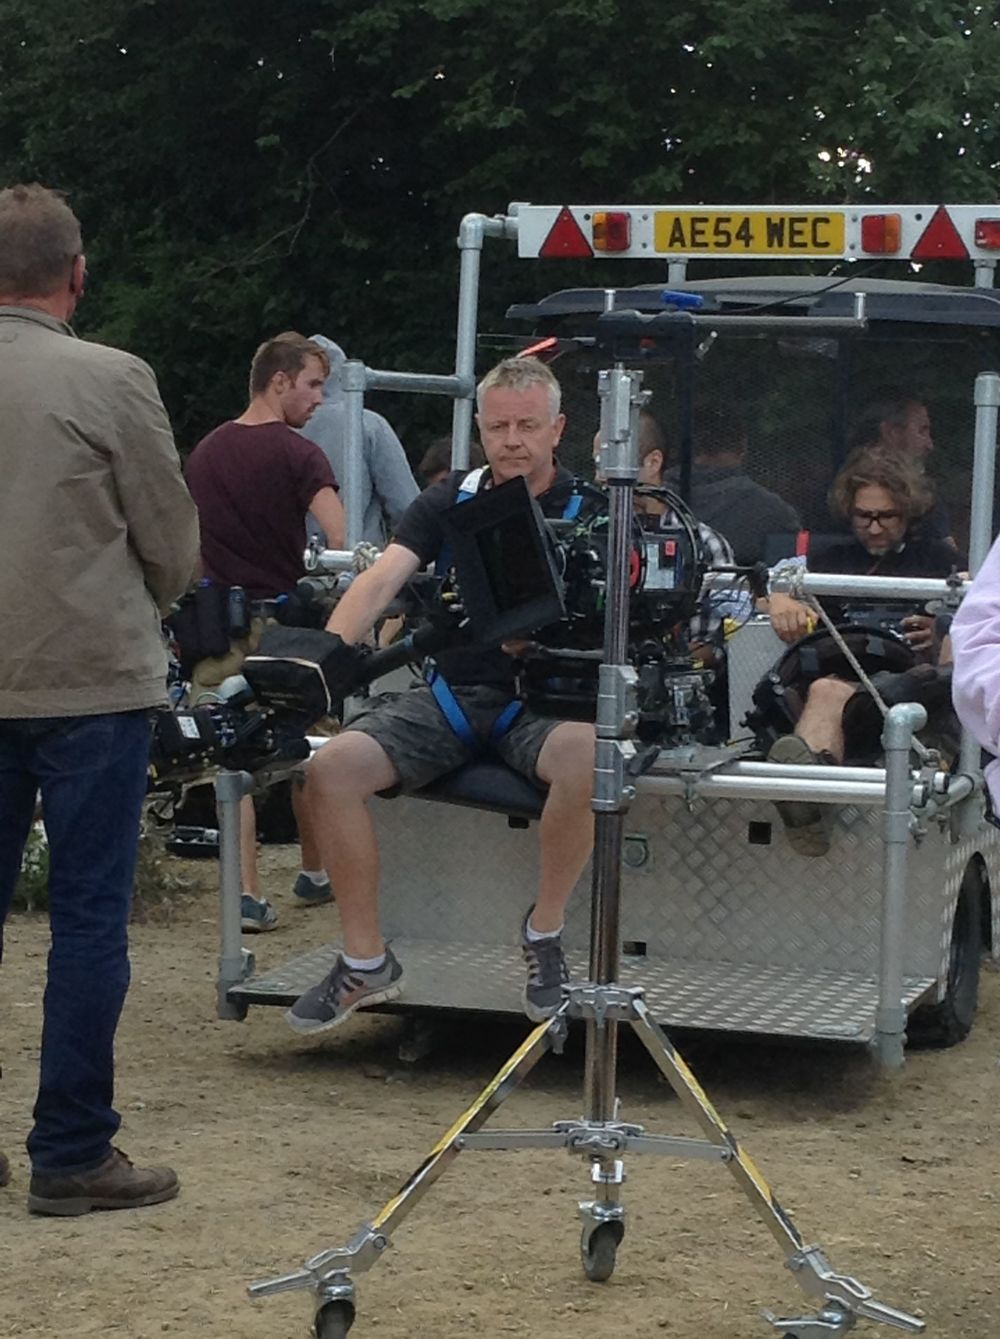 Arri Alexa camera on a steadicam and Jonny (director) looking at the monitor